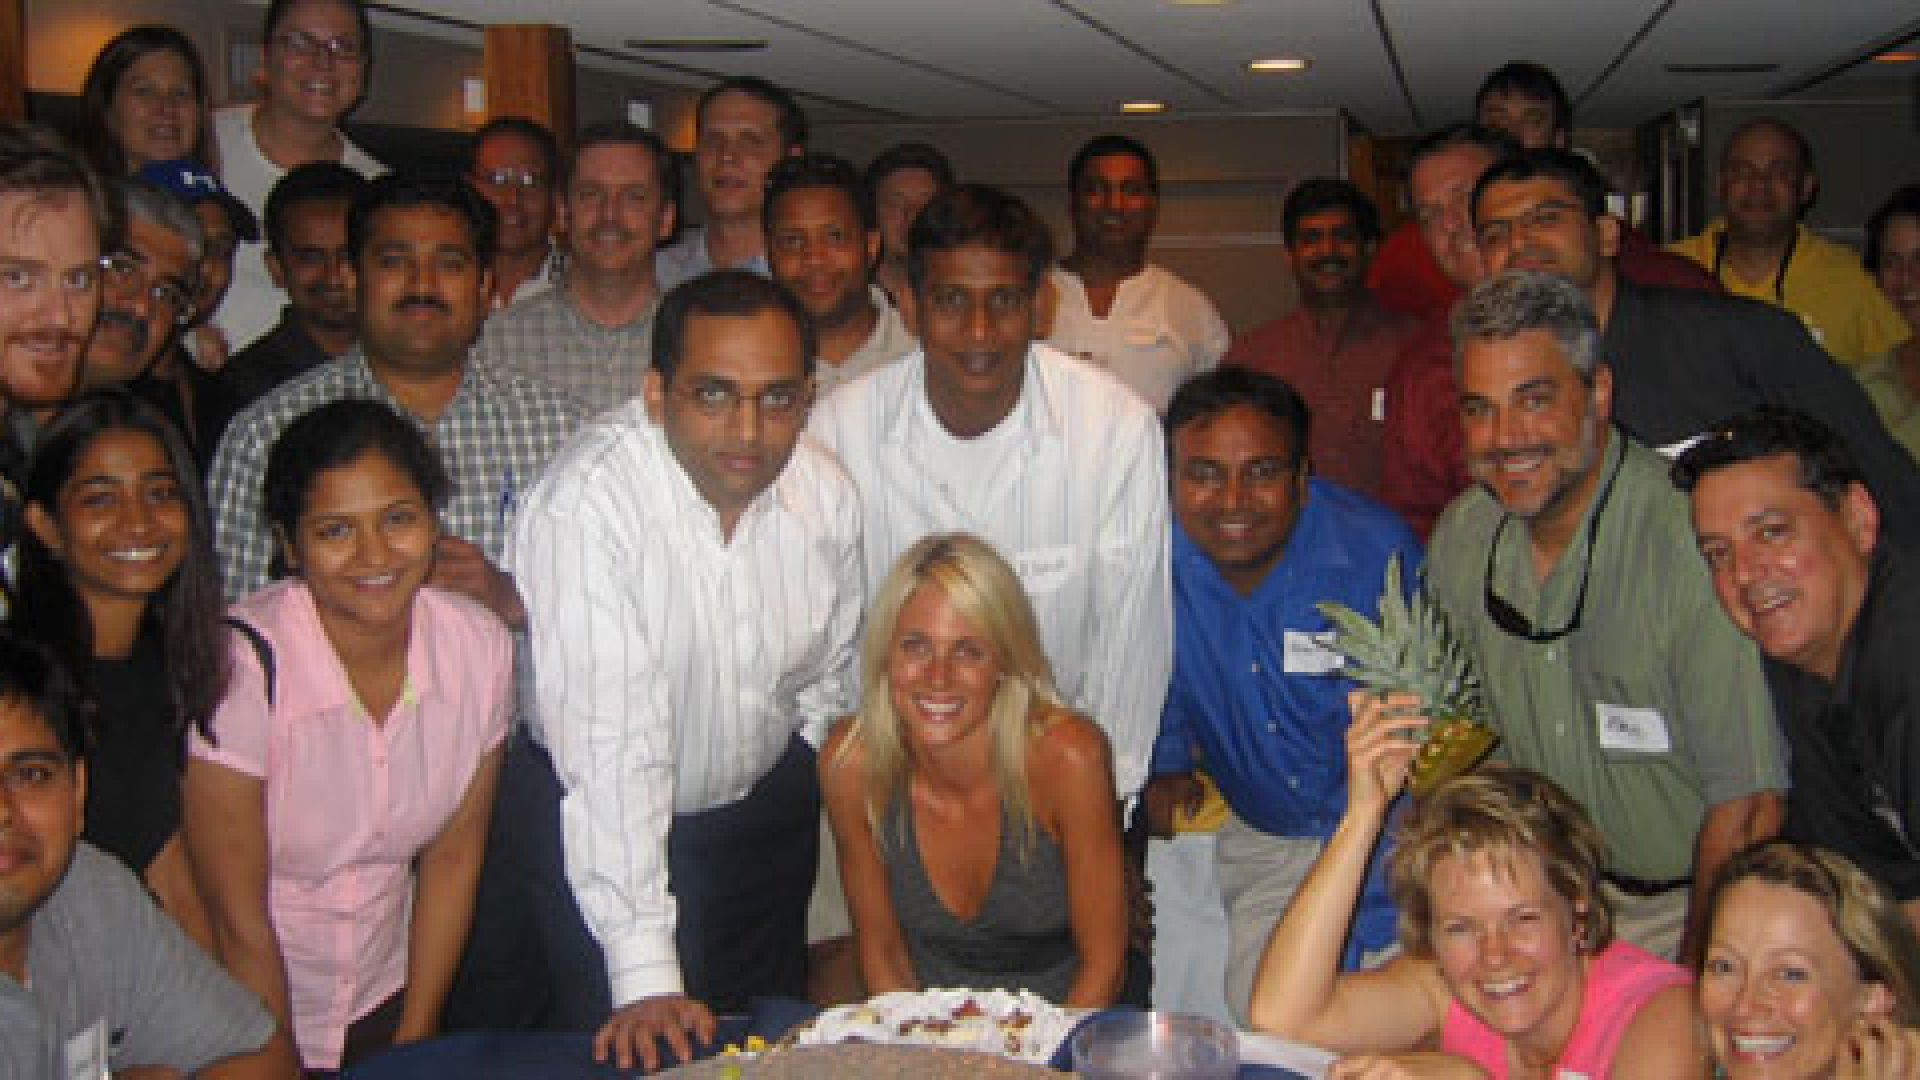 At their homey office and at regular special events such as this evening dinner cruise, employees of The Squires Group are considered family by CEO Nancy Squires (pictured on the far right bottom).